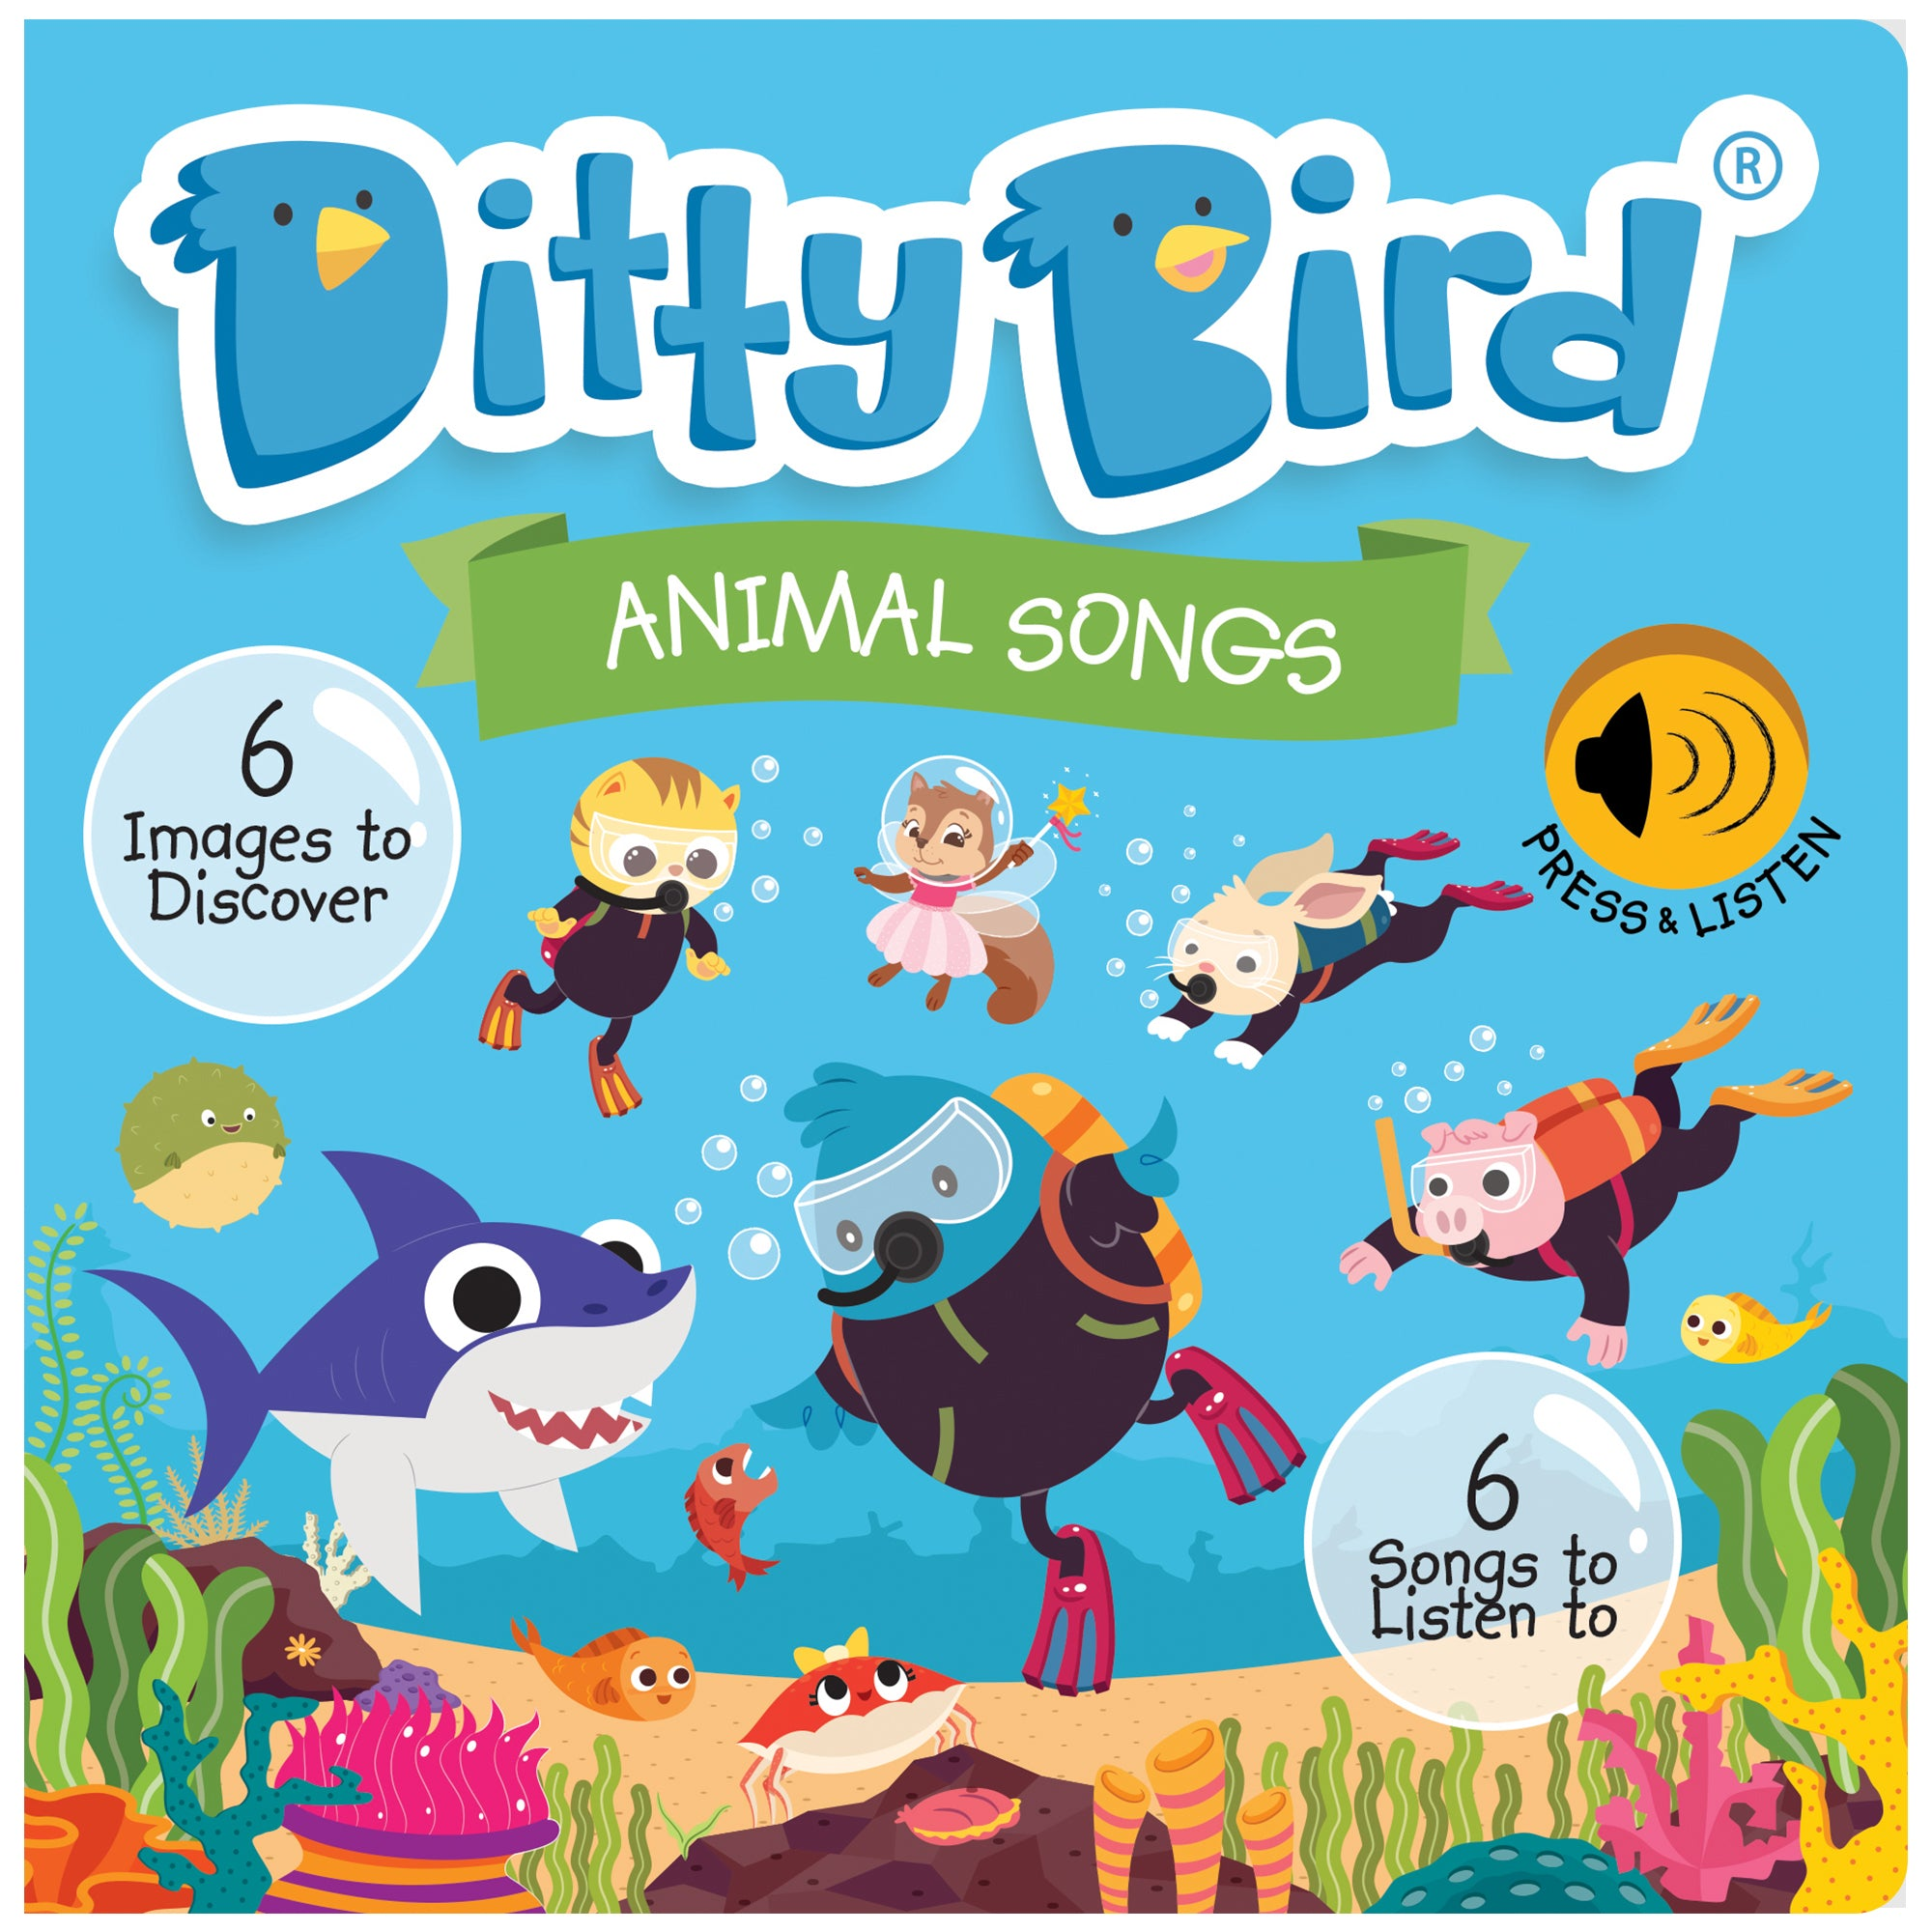 COMING SOON! Ditty Bird - Animal Songs